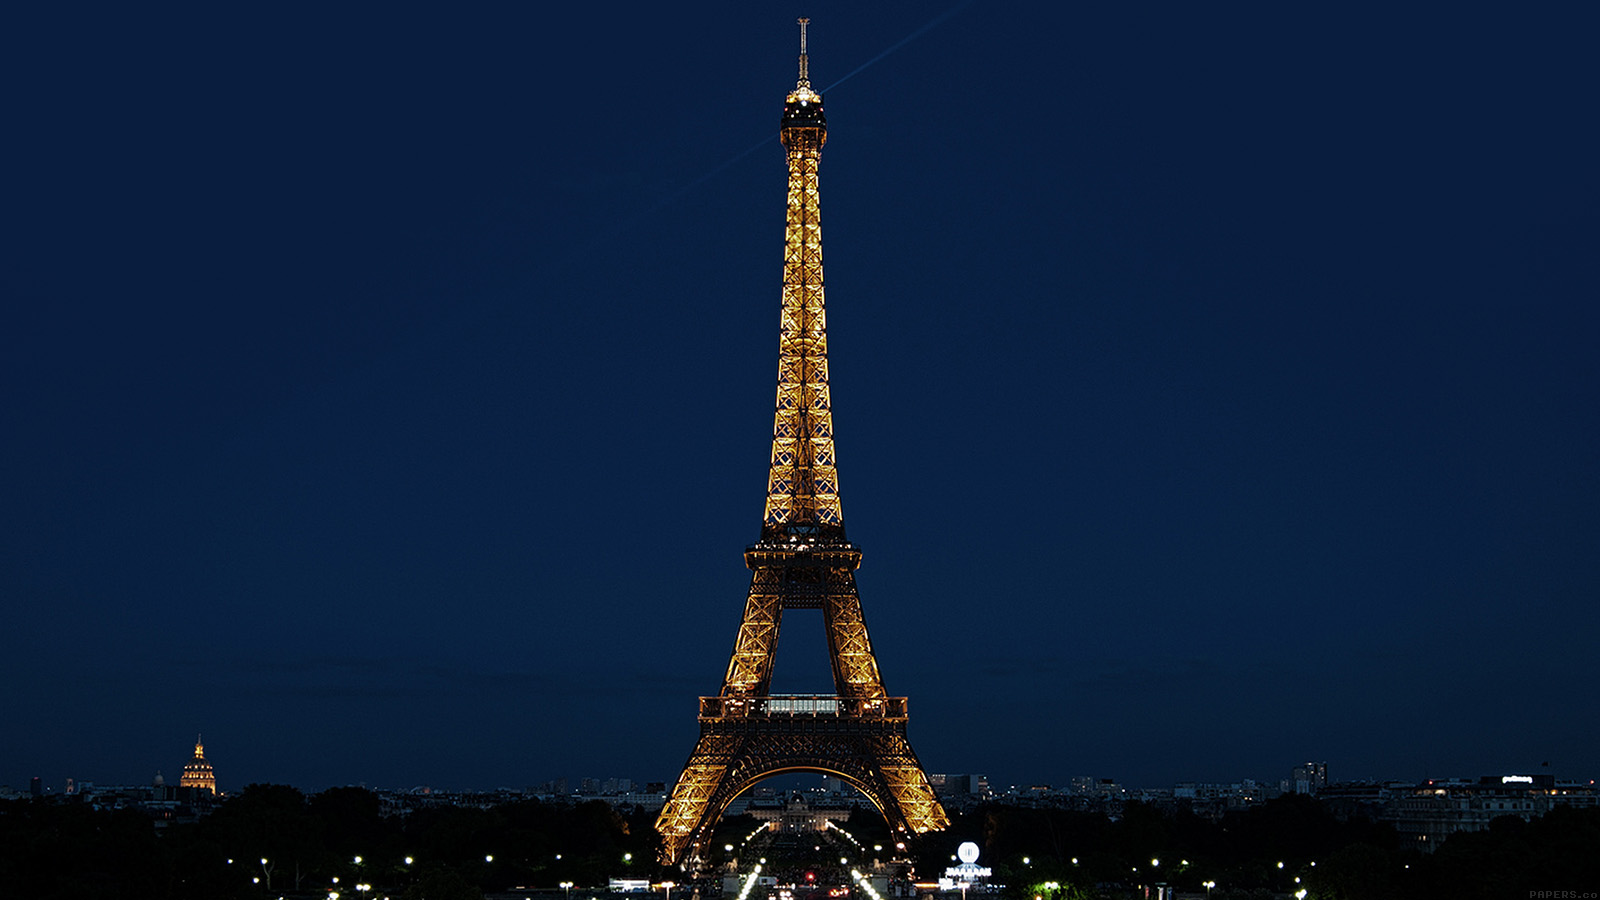 Paris In The Fall Wallpaper Ml77 Paris Night France City Eiffel Tower Papers Co